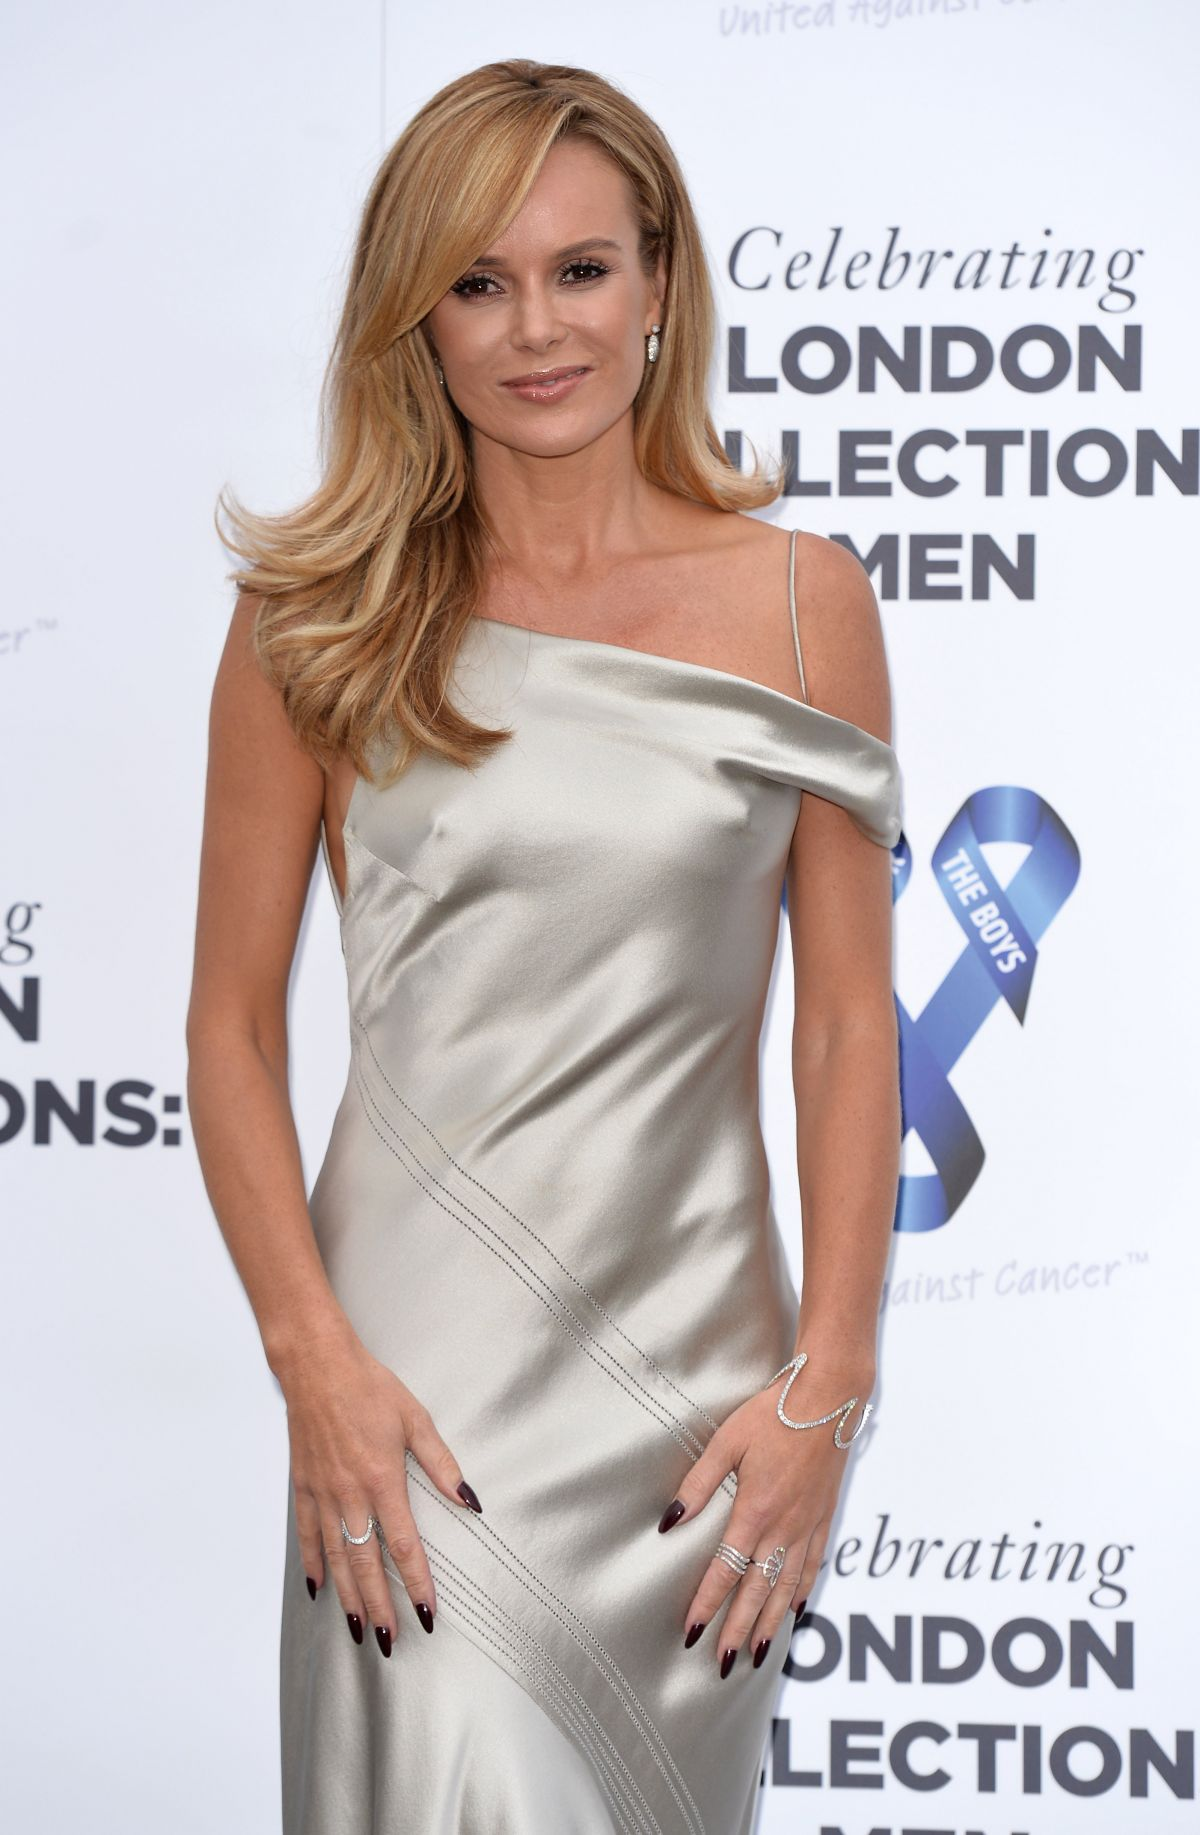 AMANDA HOLDEN at One for the Boys Charity Fashion Ball in London